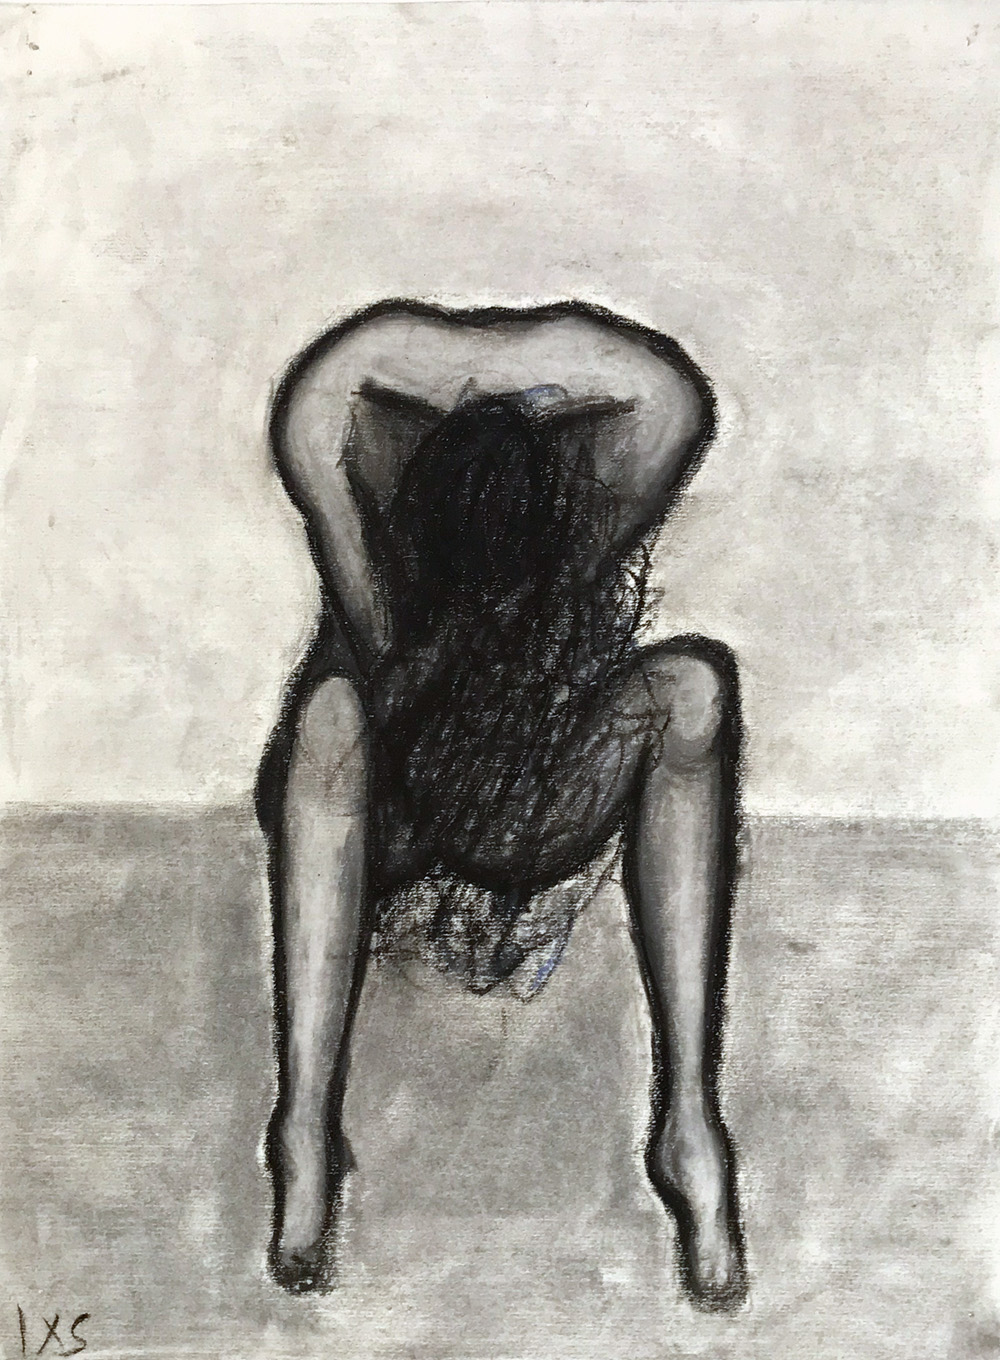 Indira-Cesarine-Untitled-pastel-on-paper-1988.jpg